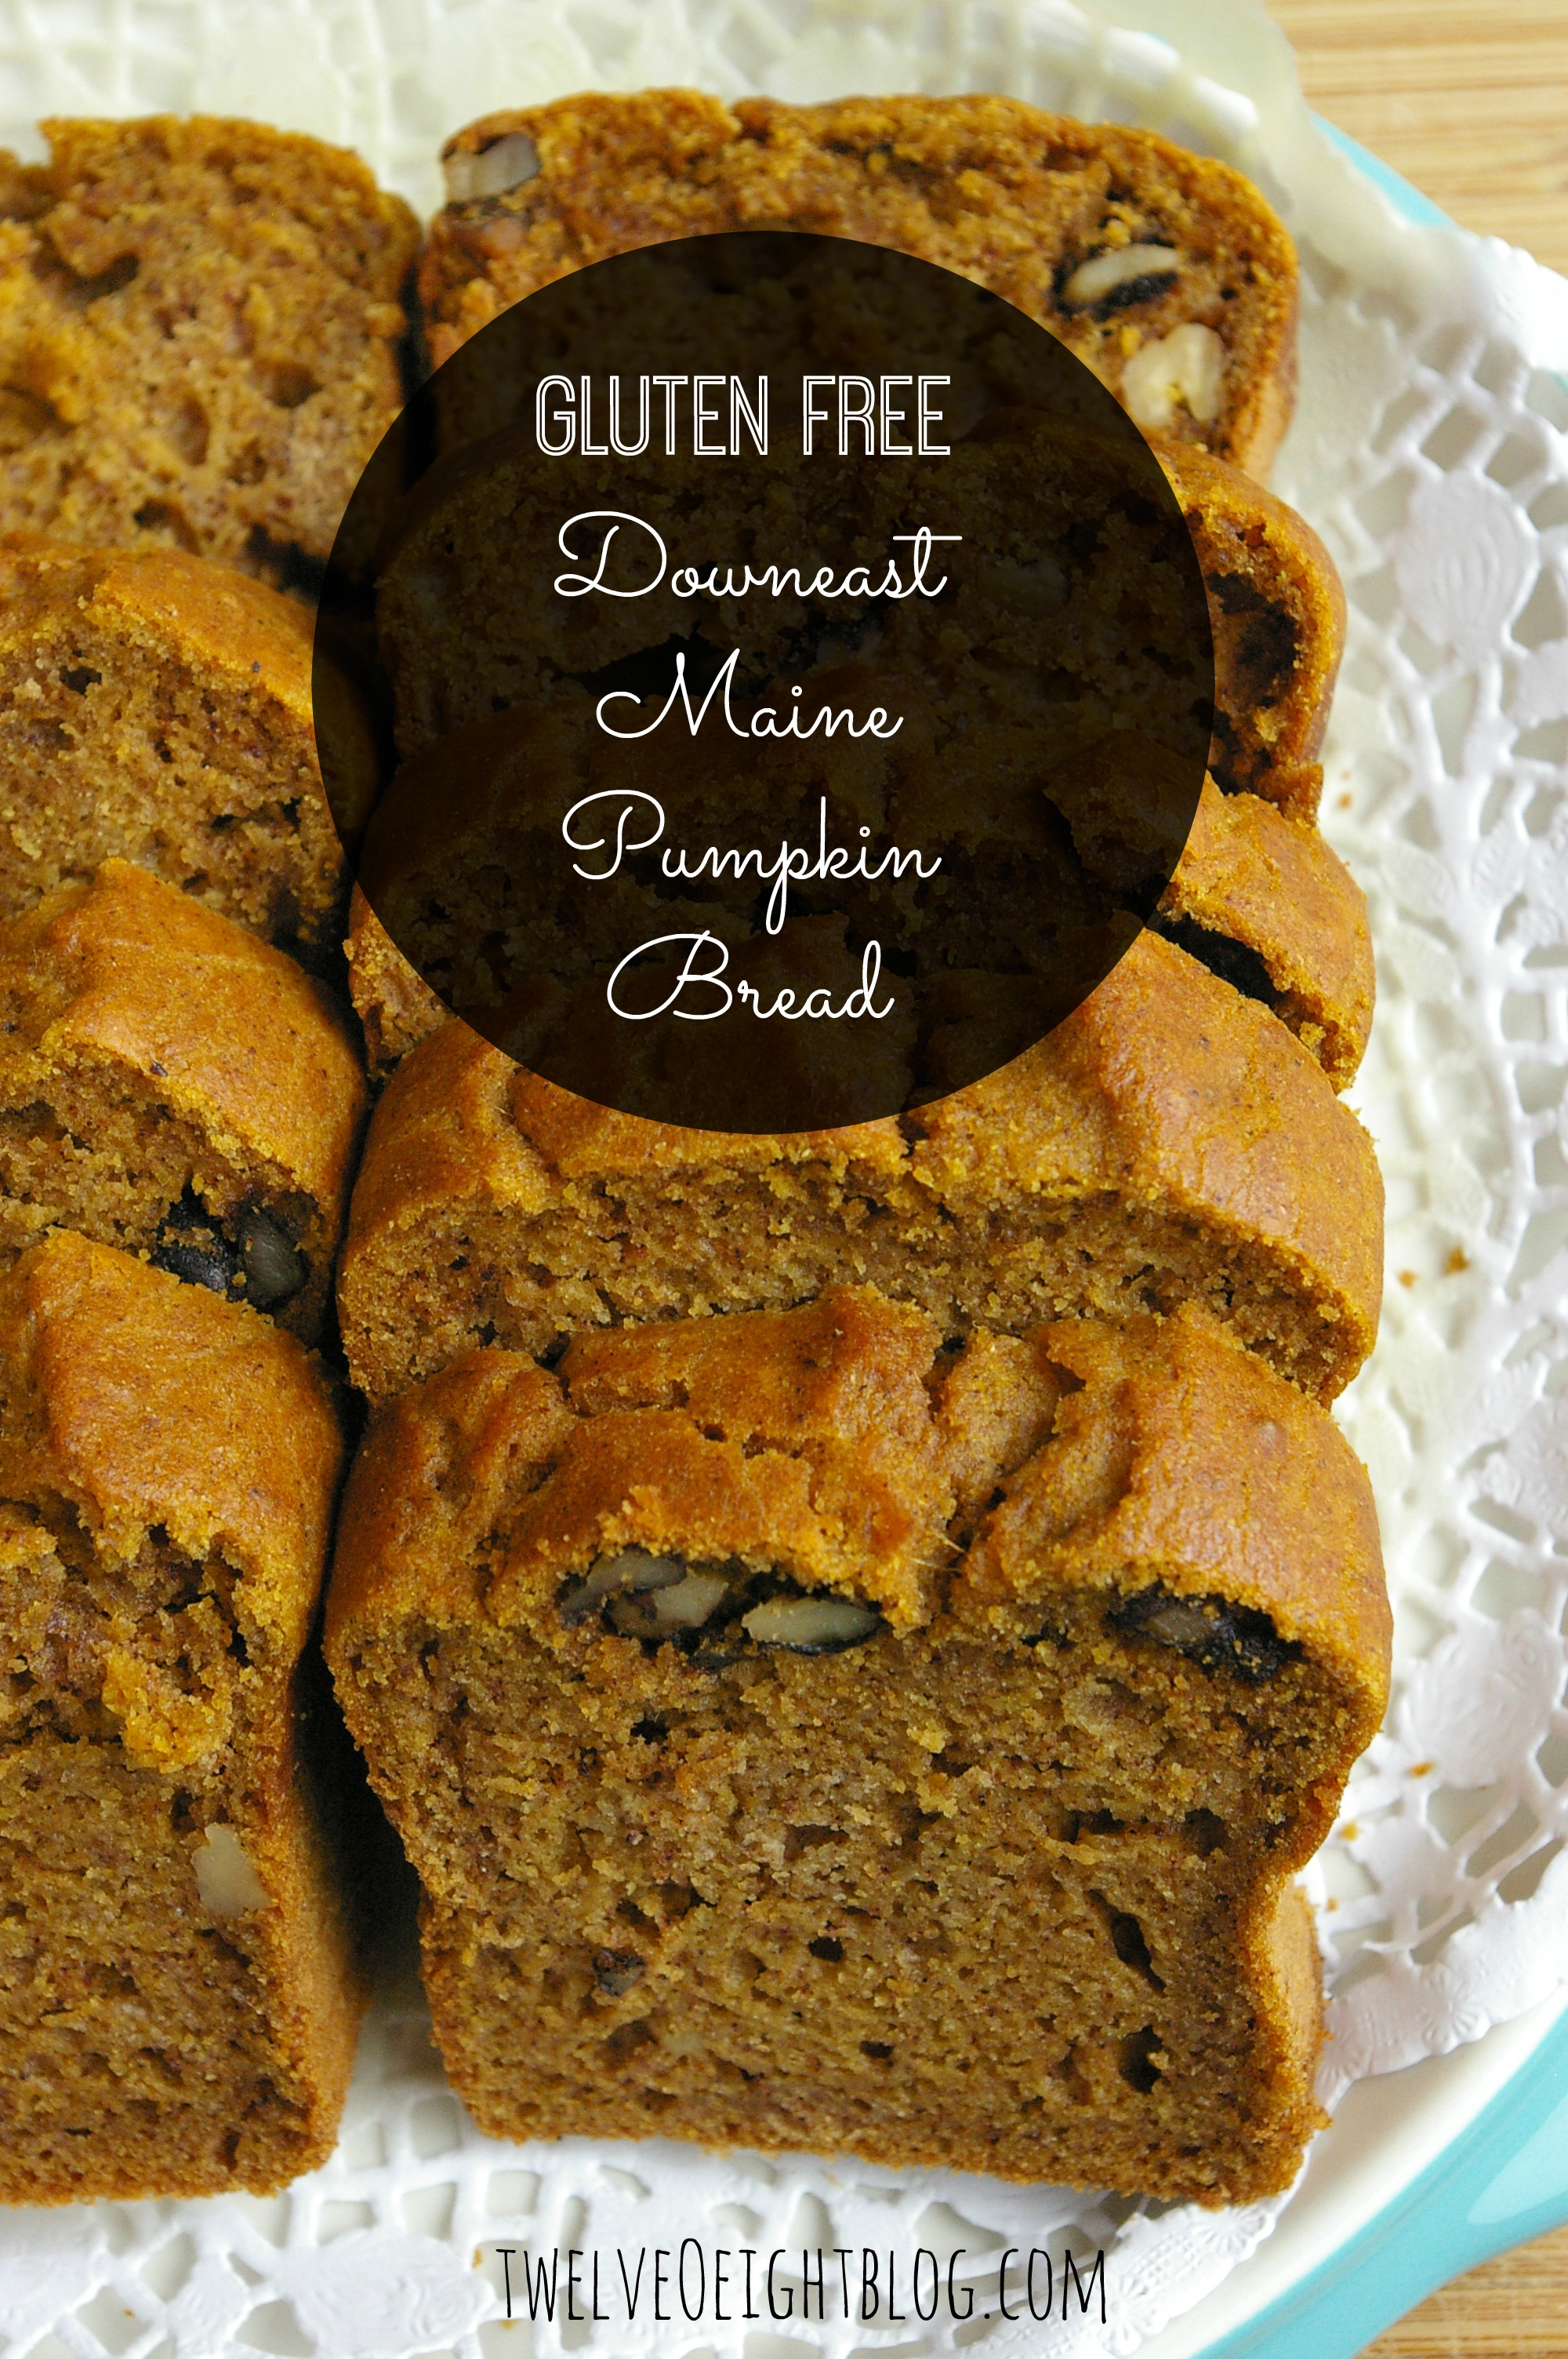 Gluten Free Downeast Maine Pumpkin Bread Recipe - twelveOeight